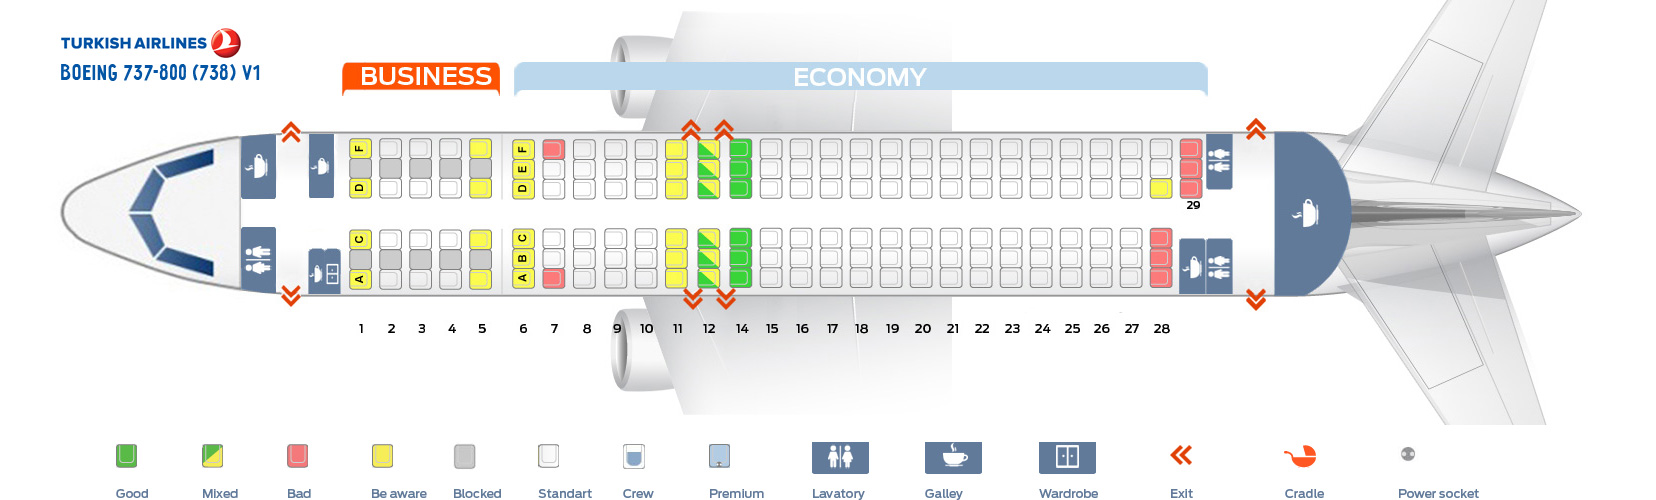 737-800 Seat Map Seat map Boeing 737 800 Turkish Airlines. Best seats in the plane 737-800 Seat Map